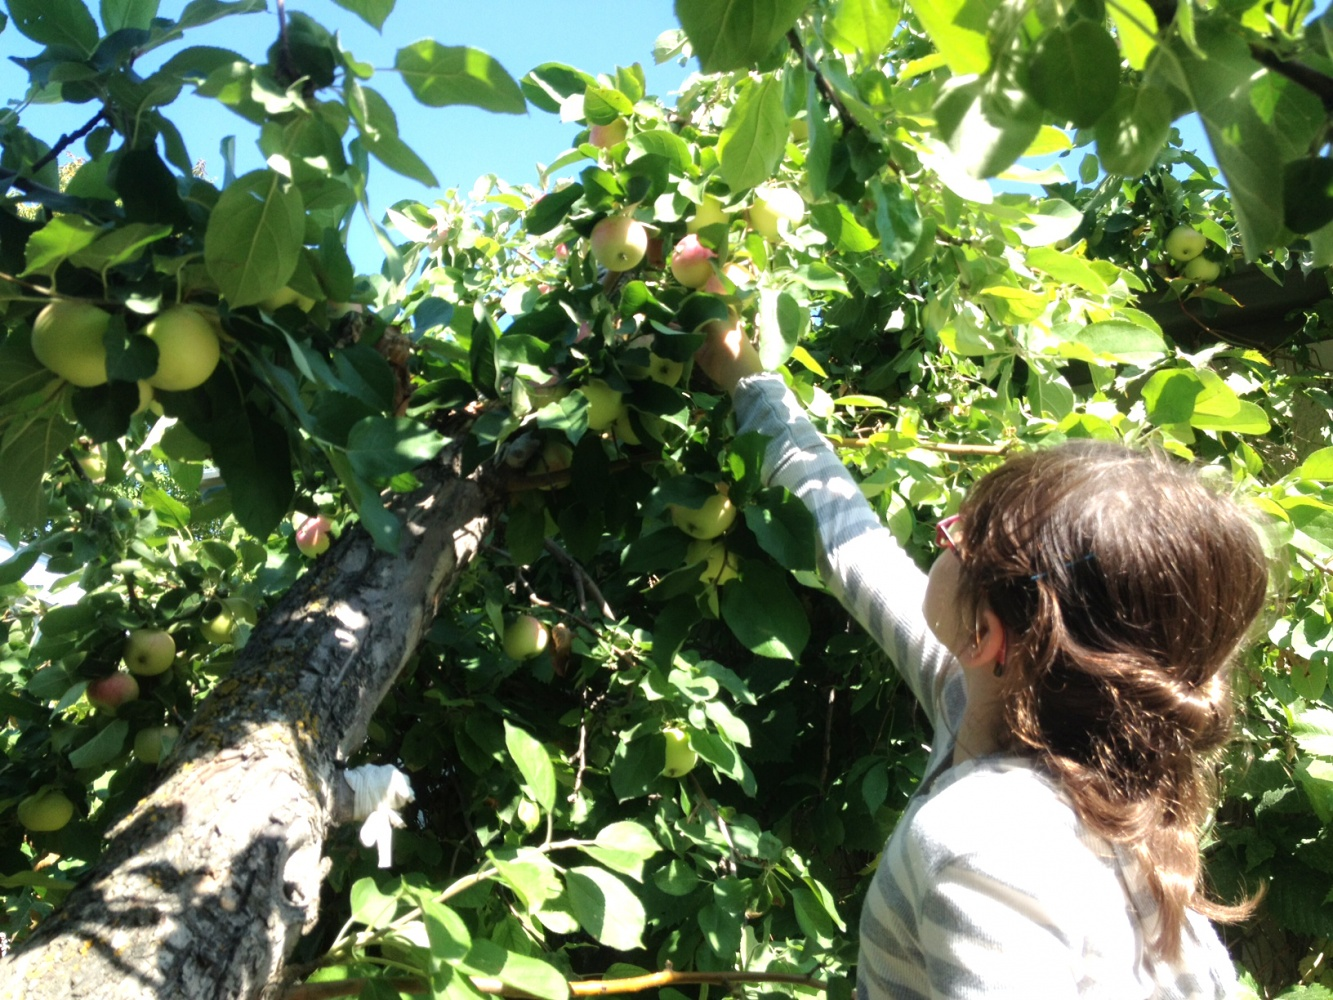 breann harvesting apples